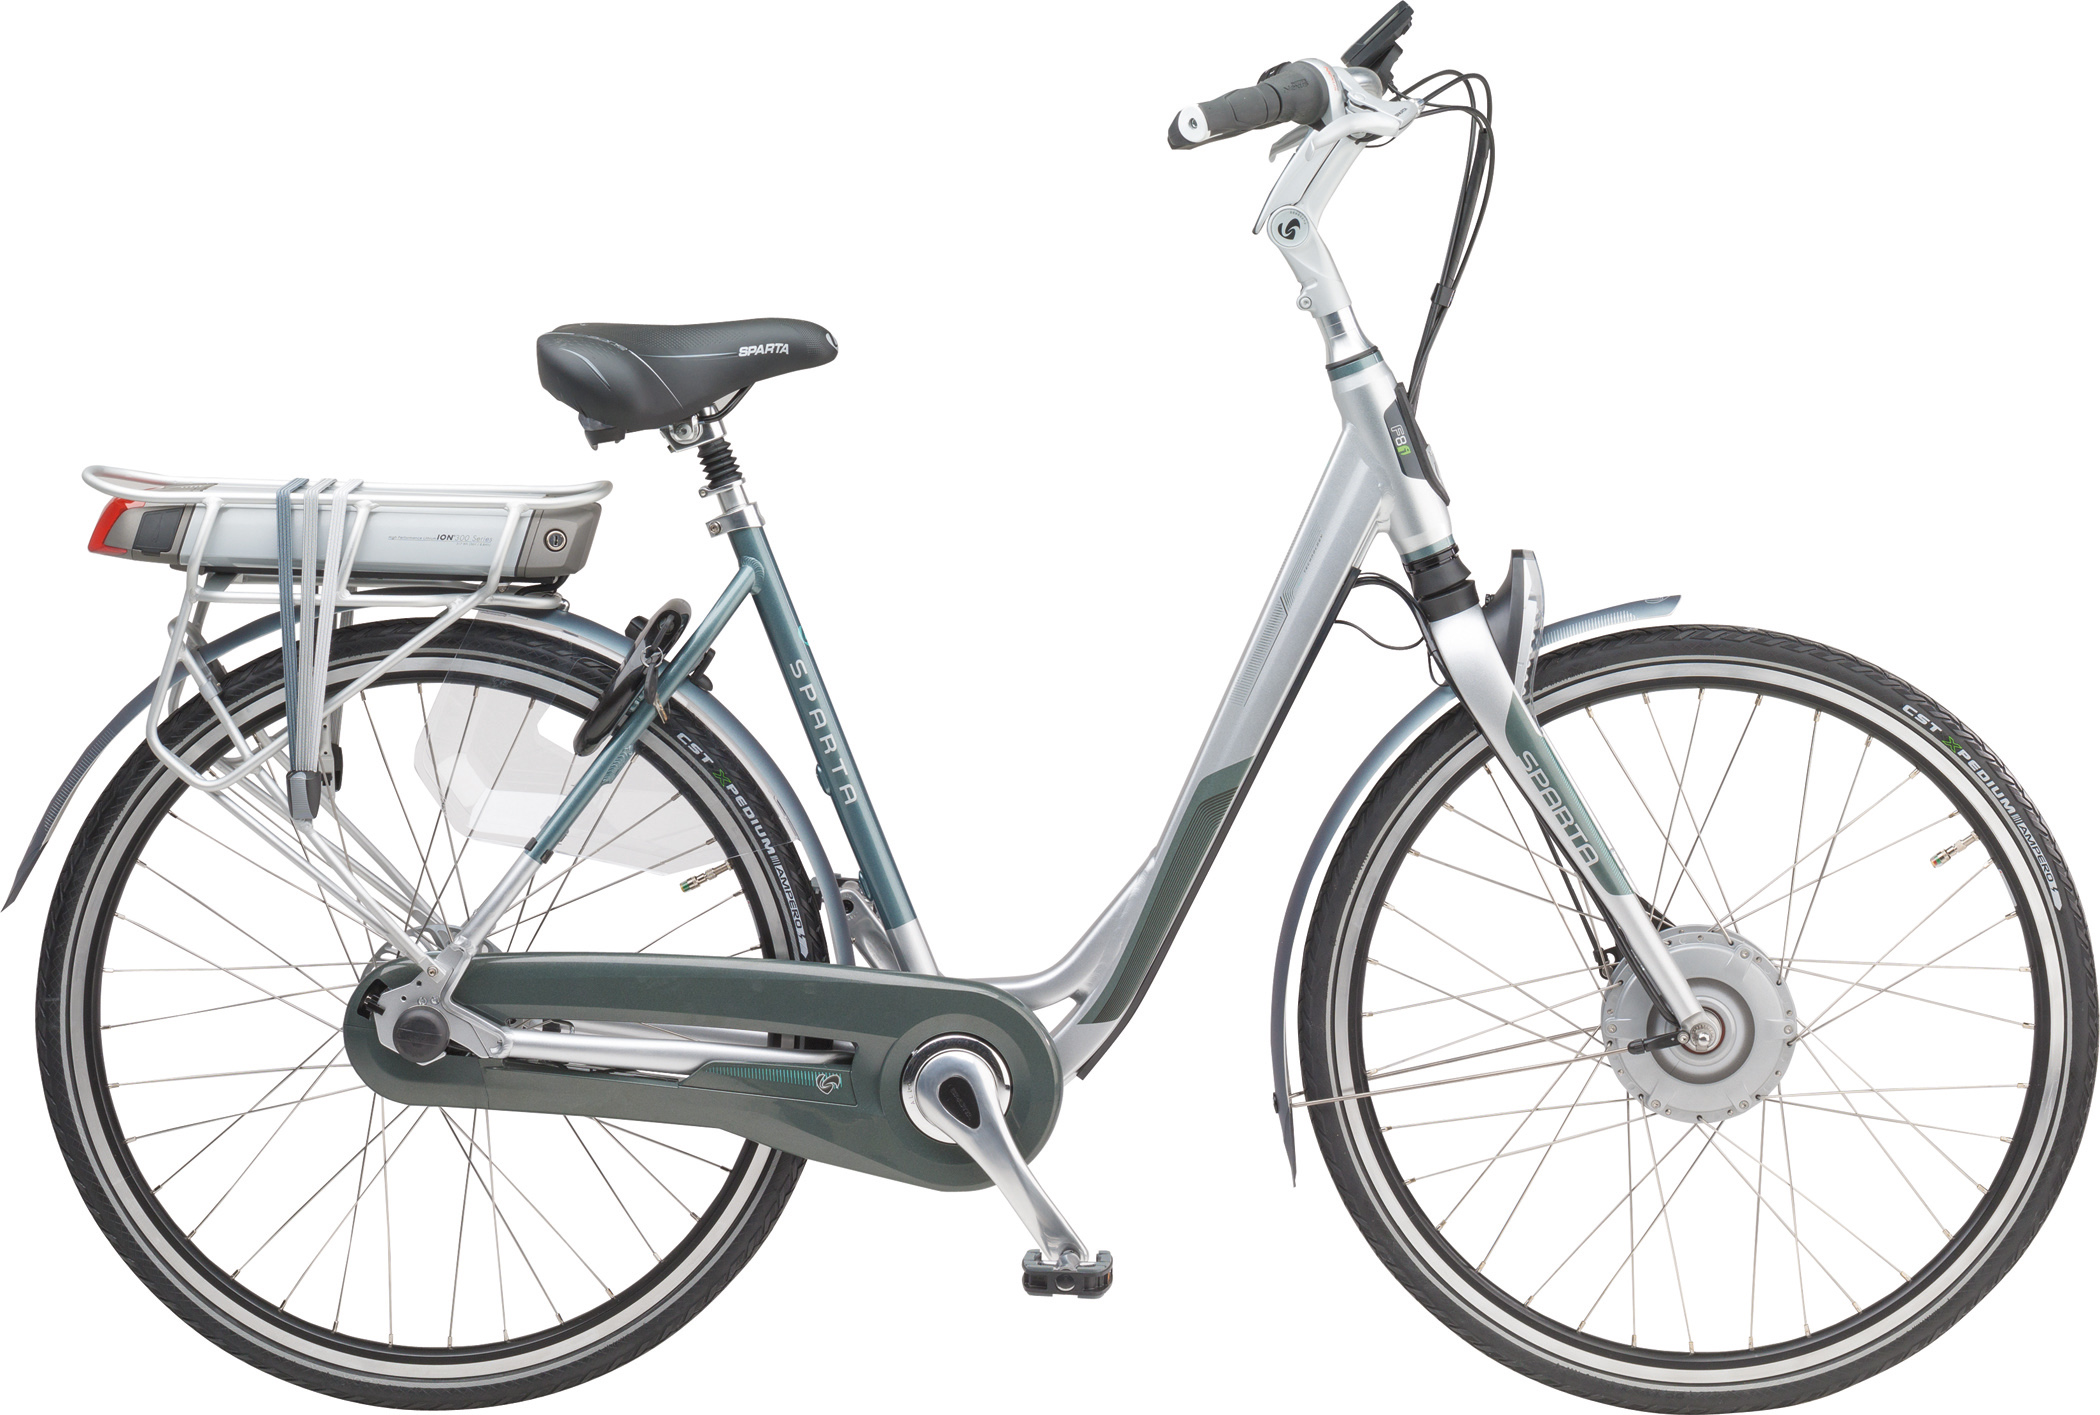 ZEMIC e-bike